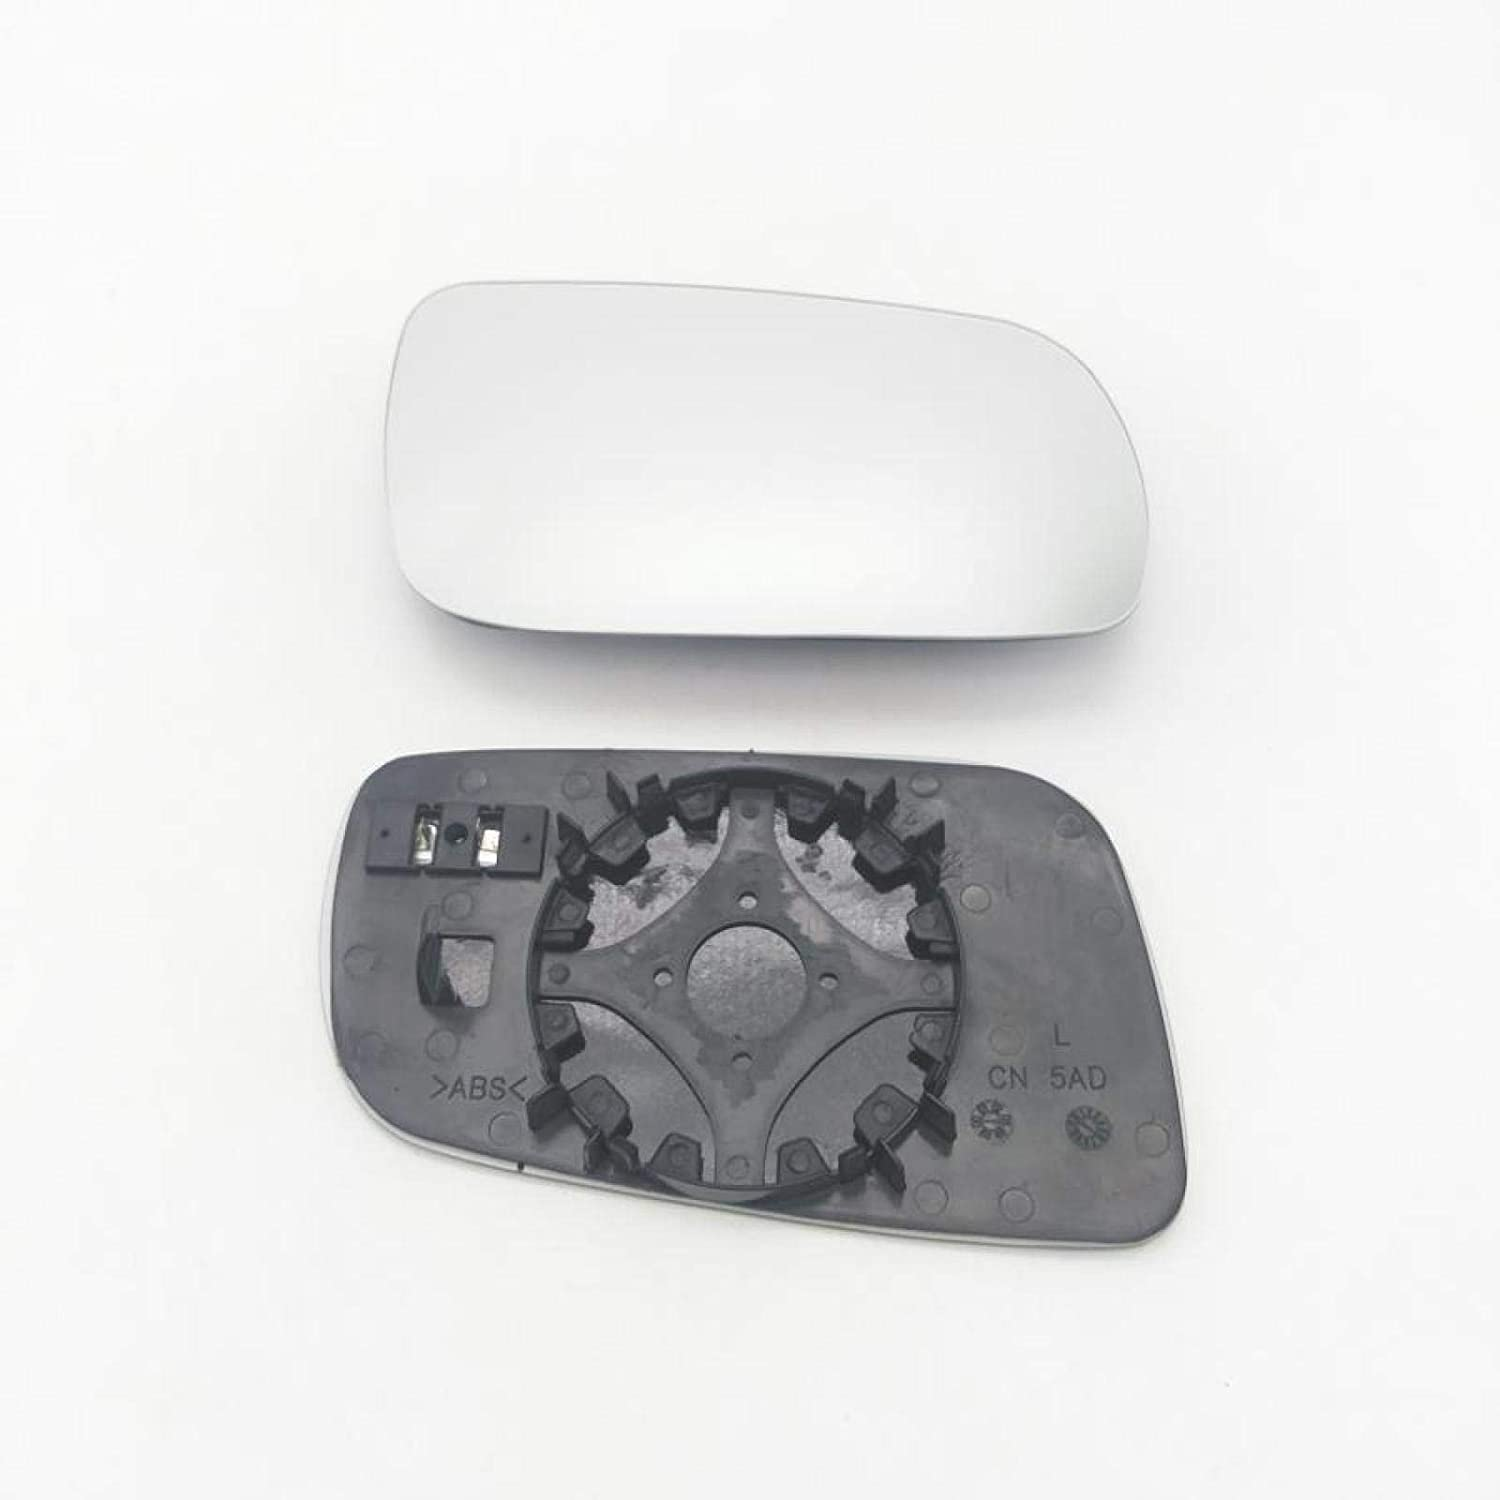 BYWWANG Car Stying Rear Door Heated Daily bargain sale Mirror Max 75% OFF Glass f Covers